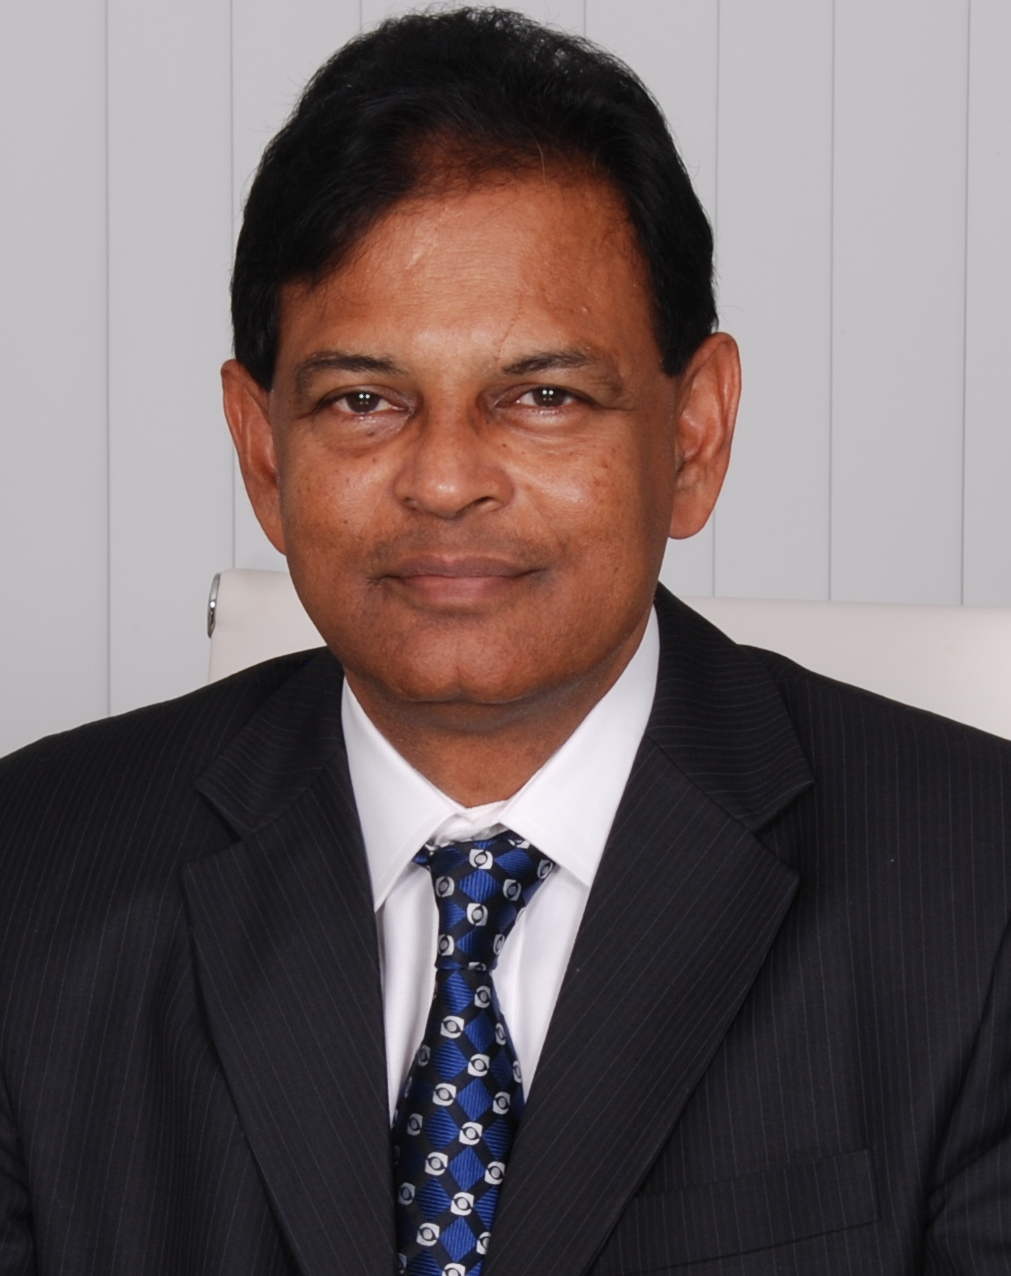 Dr. Kasu Prasad Reddy Chief Surgeon and Founder MaxiVision Eye Hospitals, Hyderabad